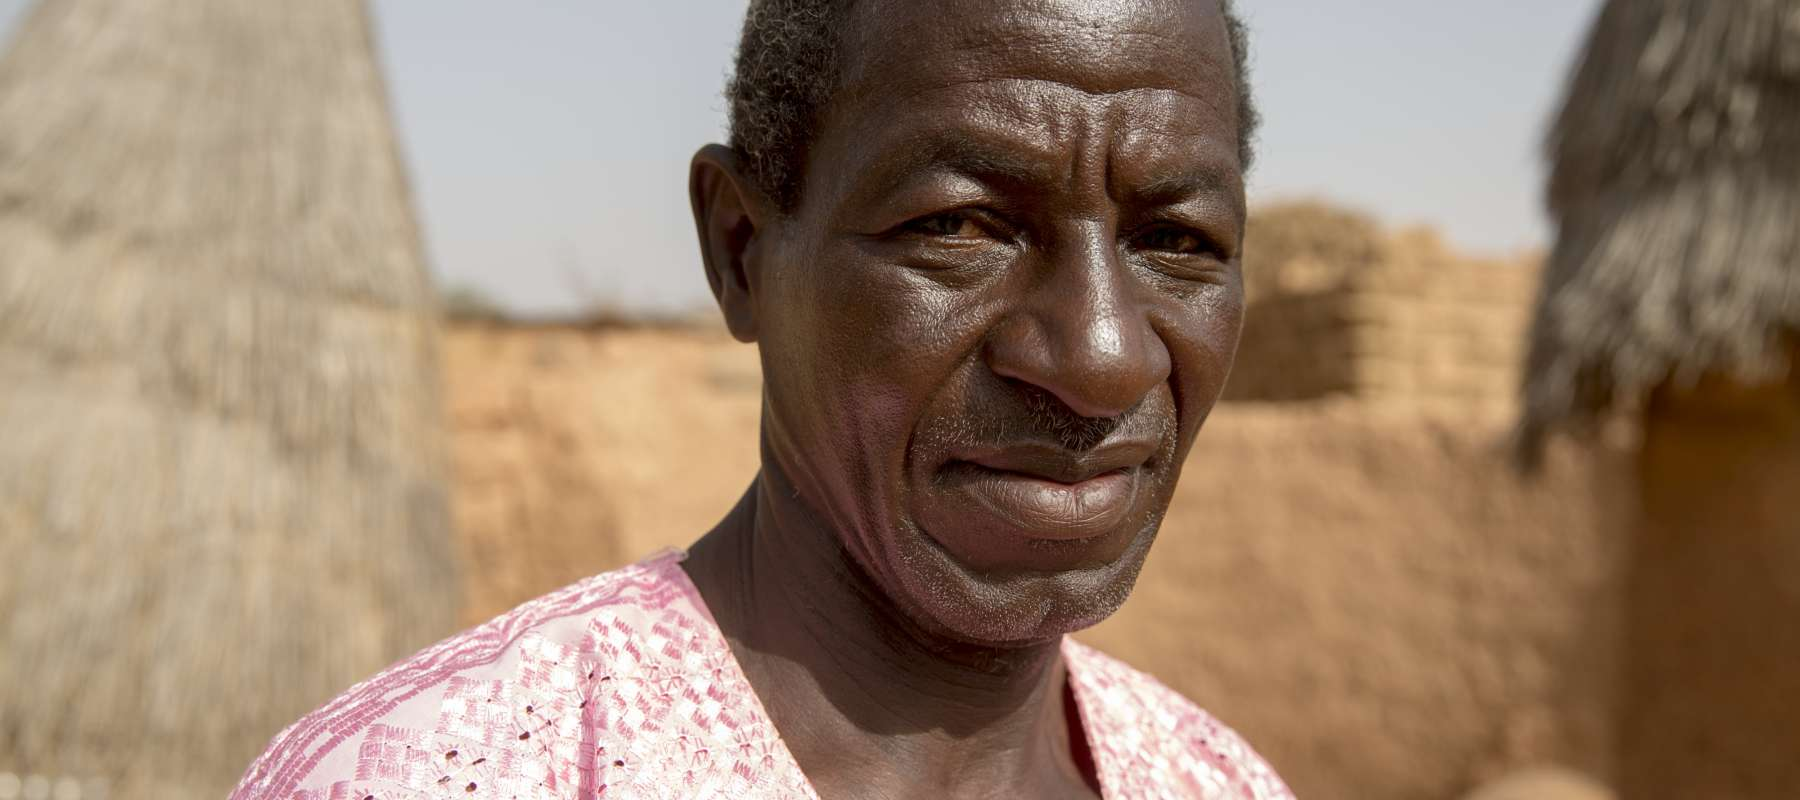 Farmer in Burkina Faso